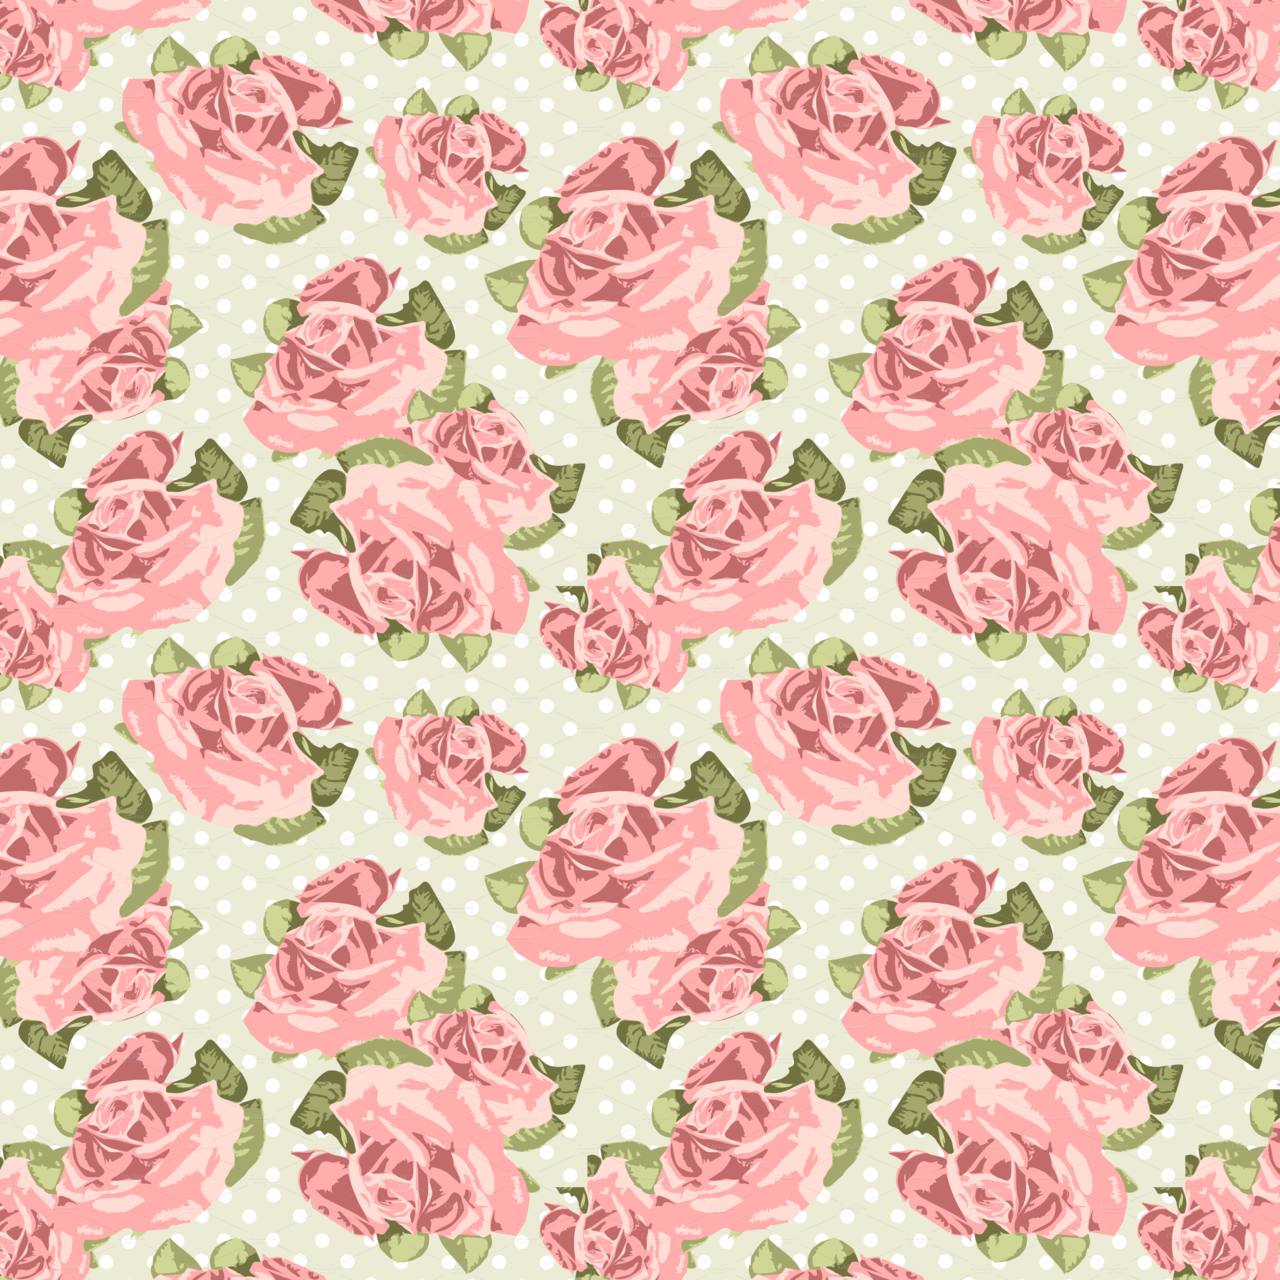 Http Wallpaper Kidcom Vintage Rose Backgrounds Tumblrhtm Image